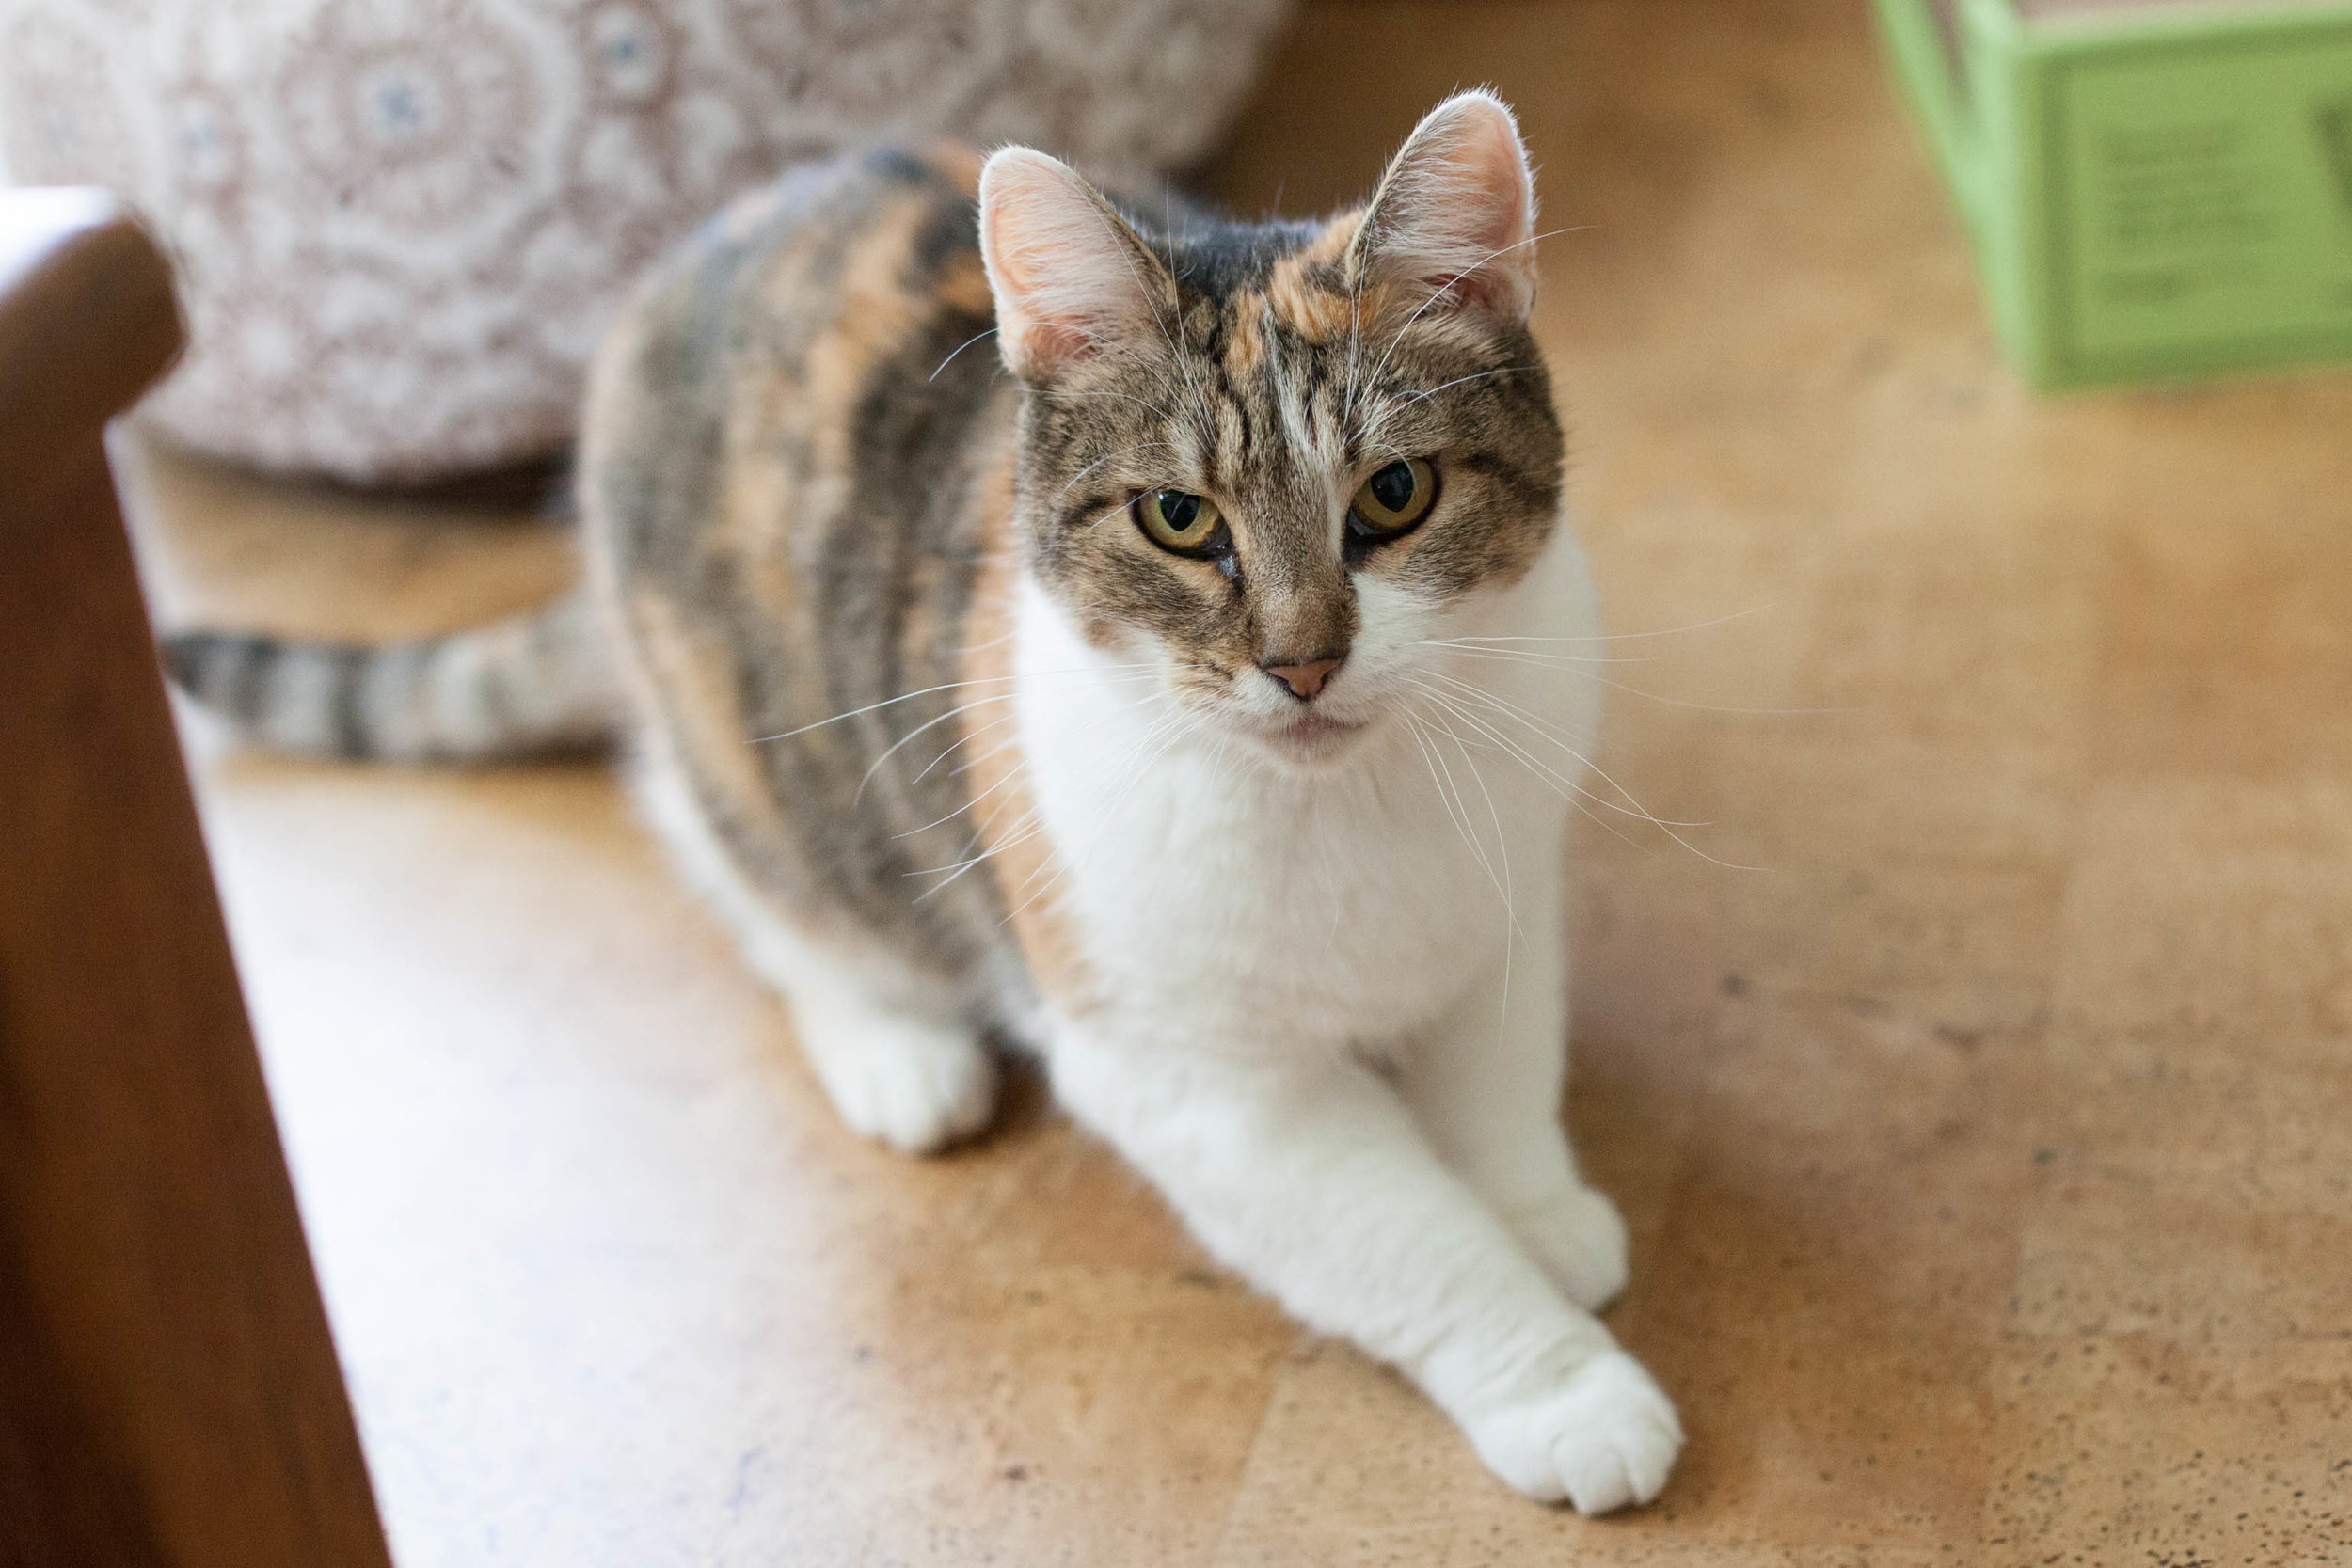 Cassie never lets her FIV+ status get in the way of living life to the fullest!